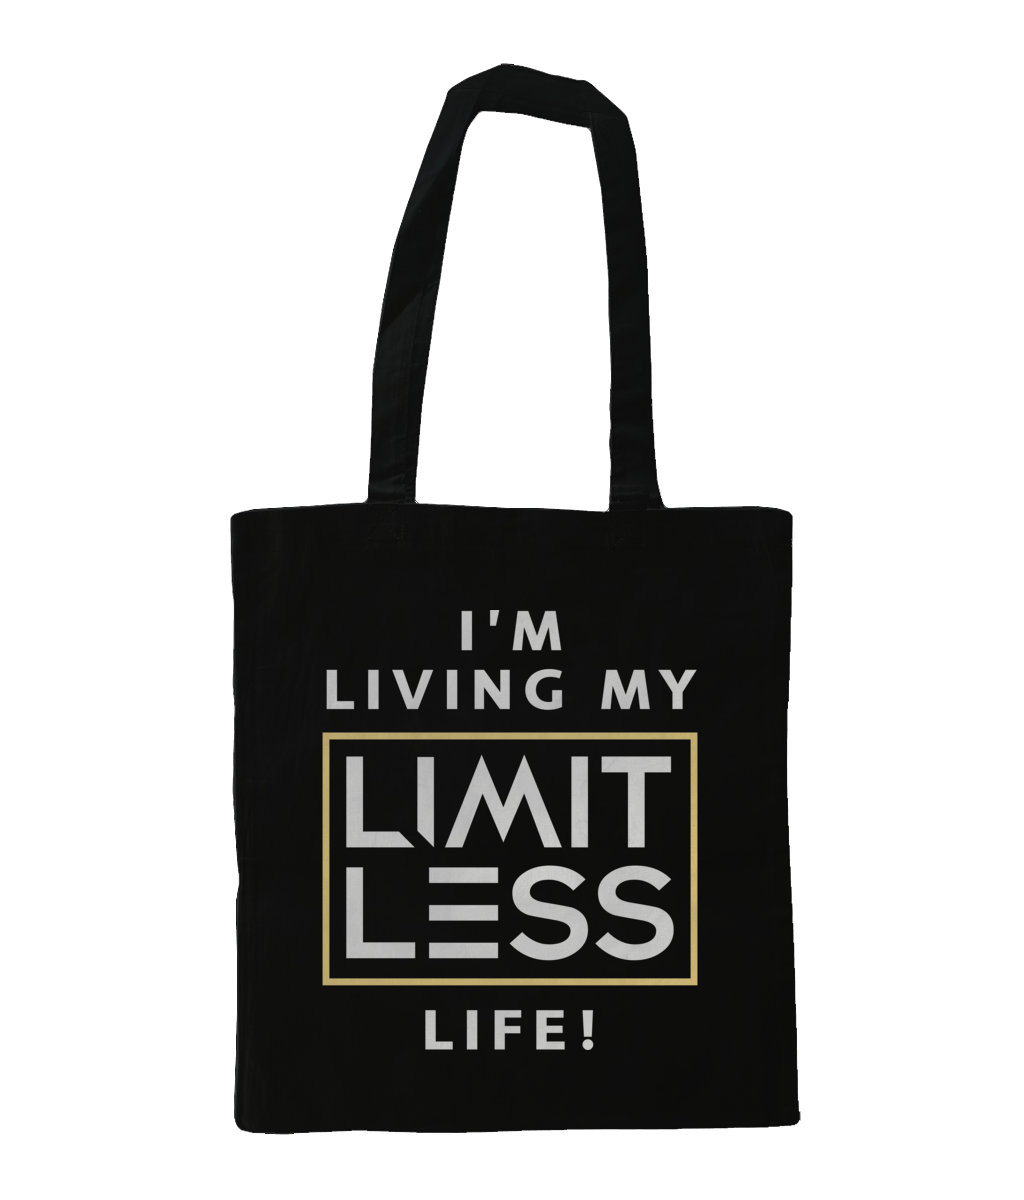 Christian Accessories Black Limitless Life Design Tote Bag